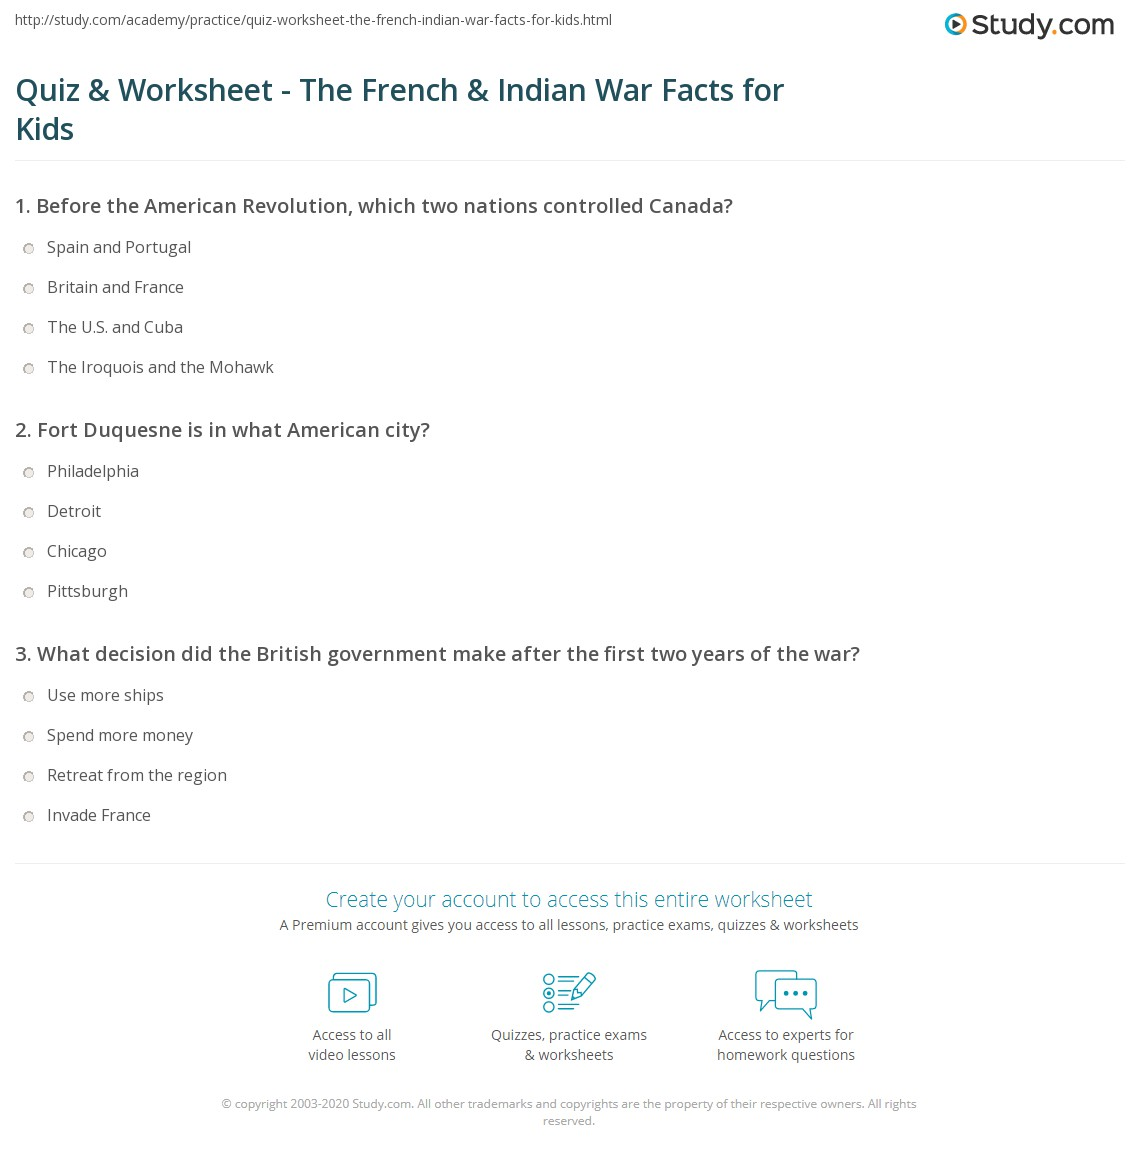 Quiz Worksheet The French Indian War Facts for Kids – French and Indian War Worksheets